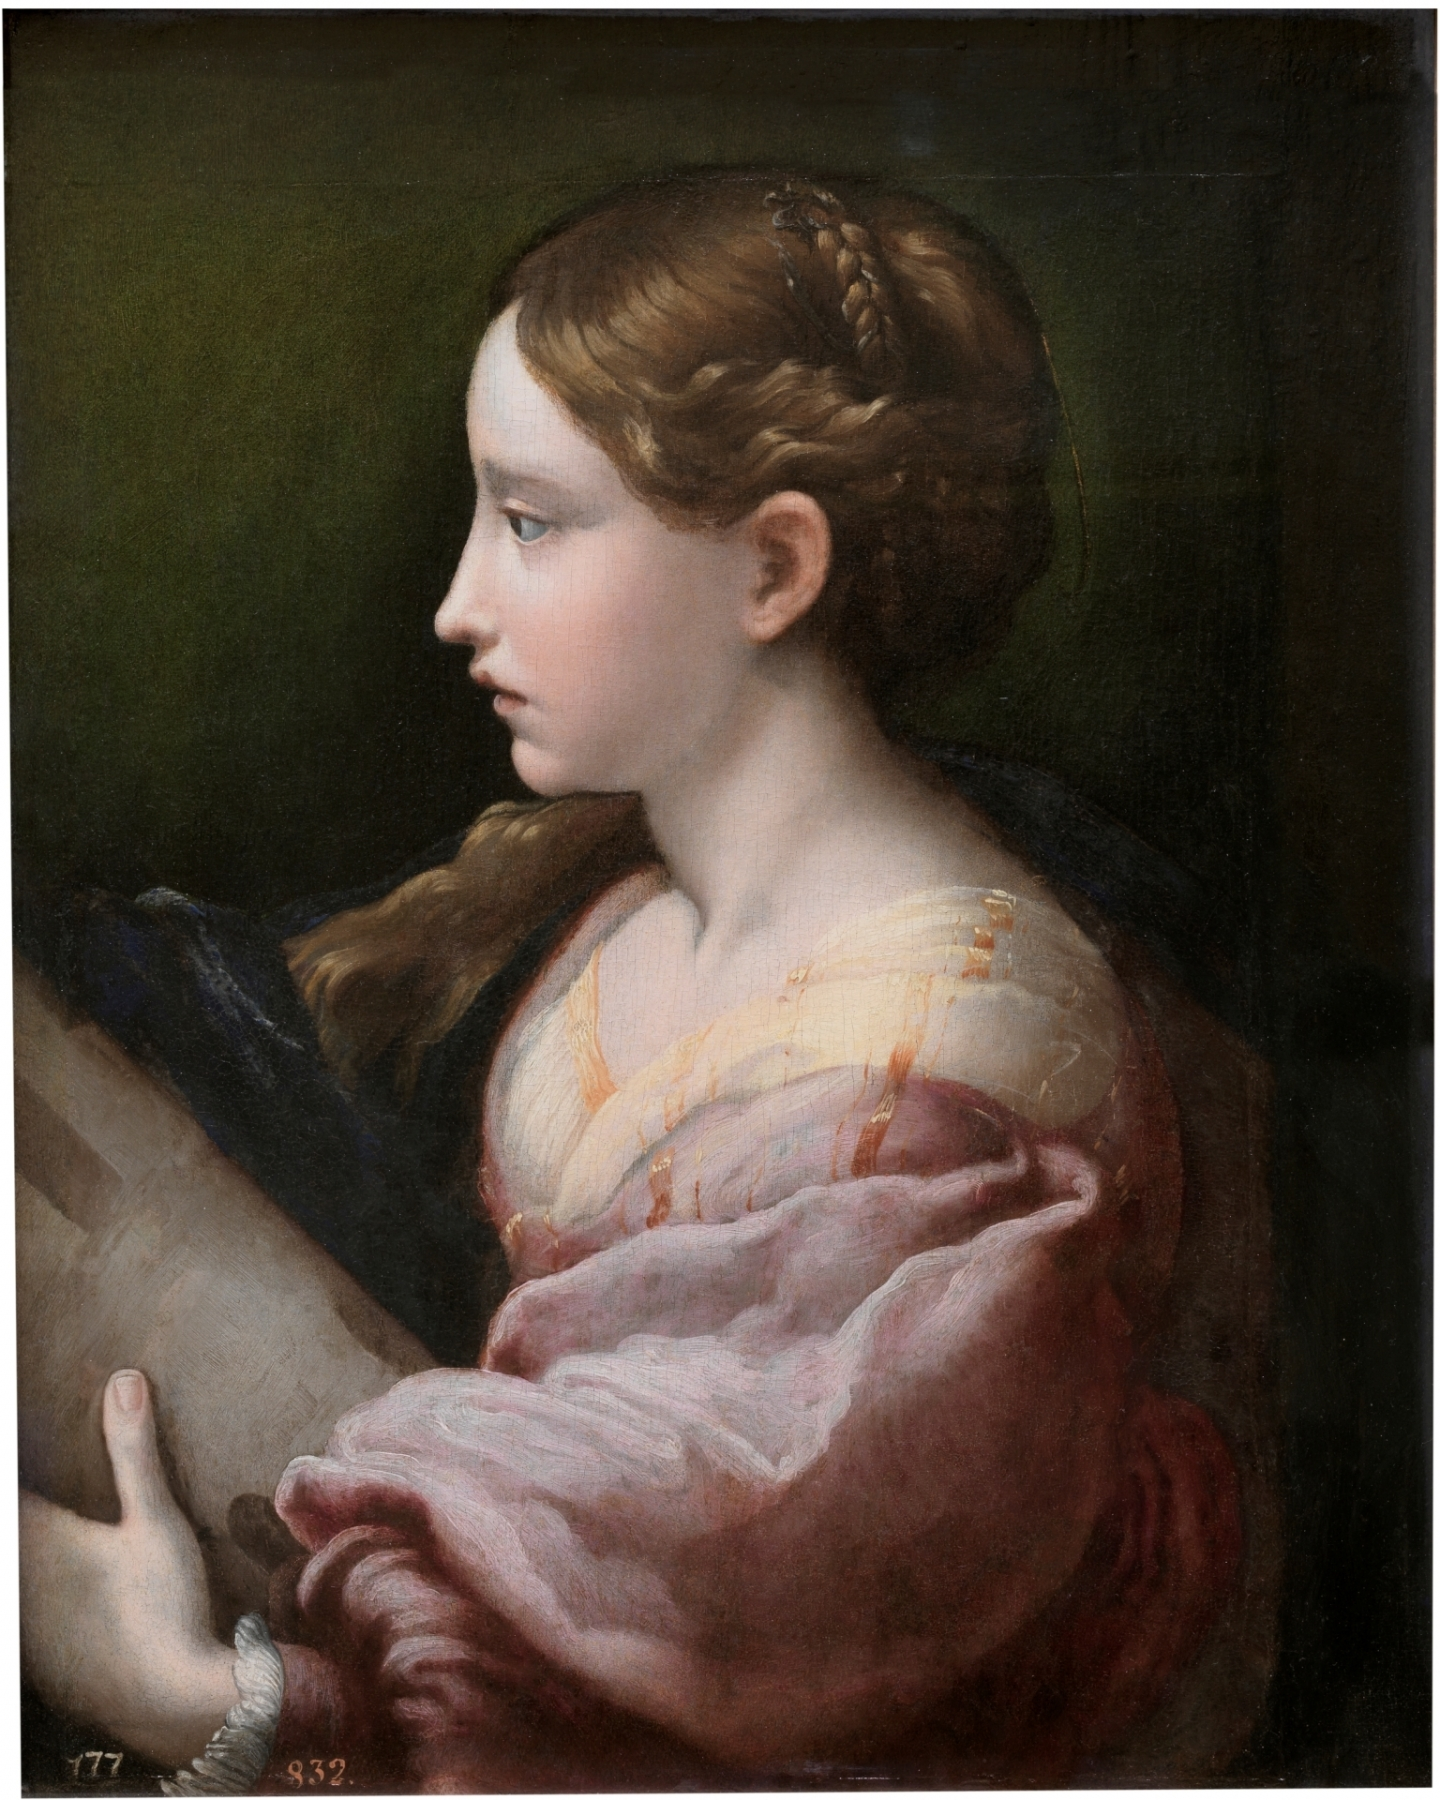 Jan de Bisschop (Amsterdam 1628-1671 Den Haag) Saint Barbara (after Parmigianino)